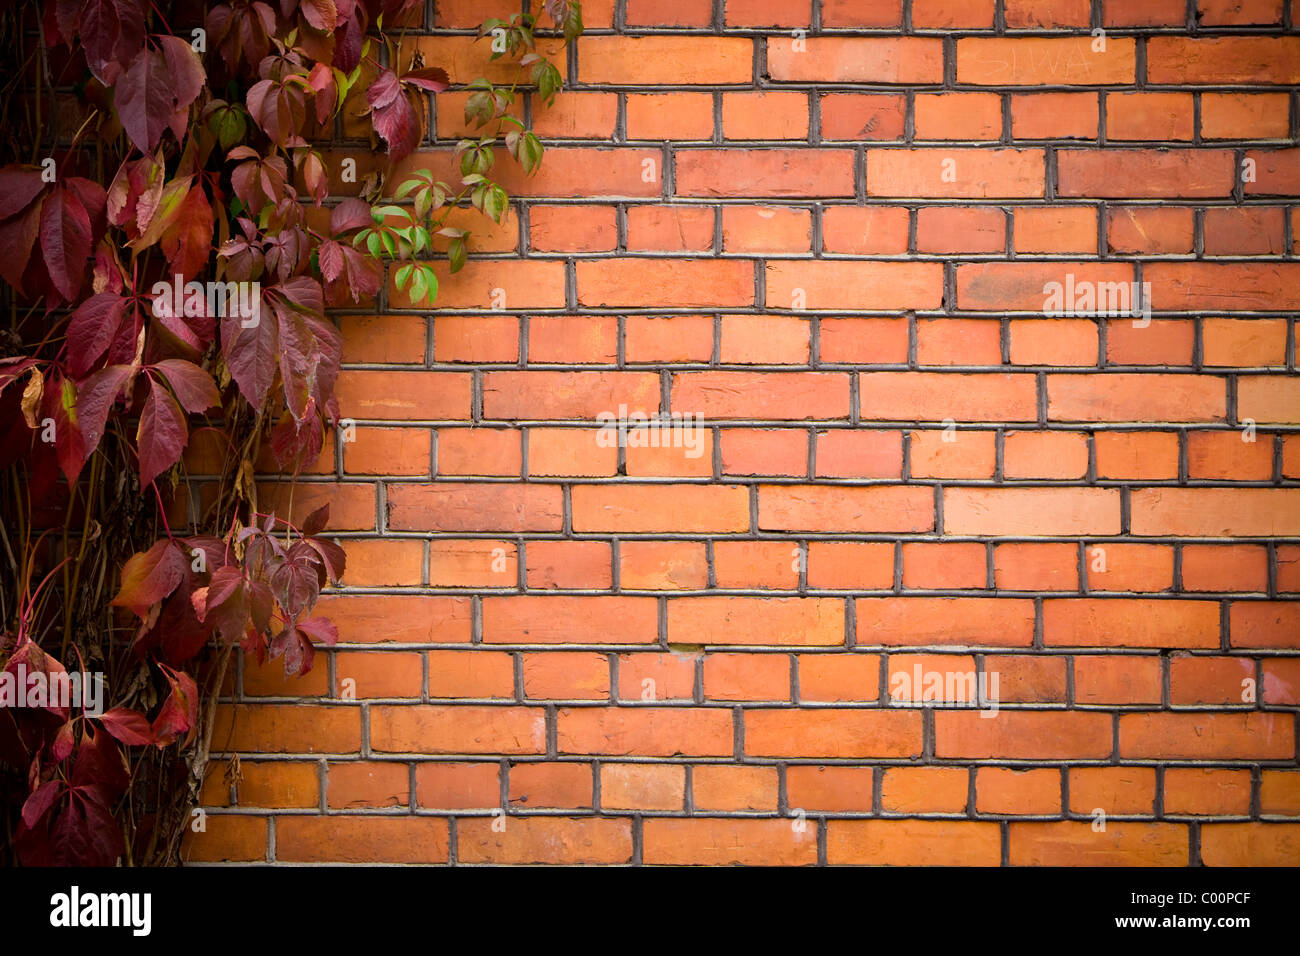 wall with vine. brick wall covered in ivy. - Stock Image